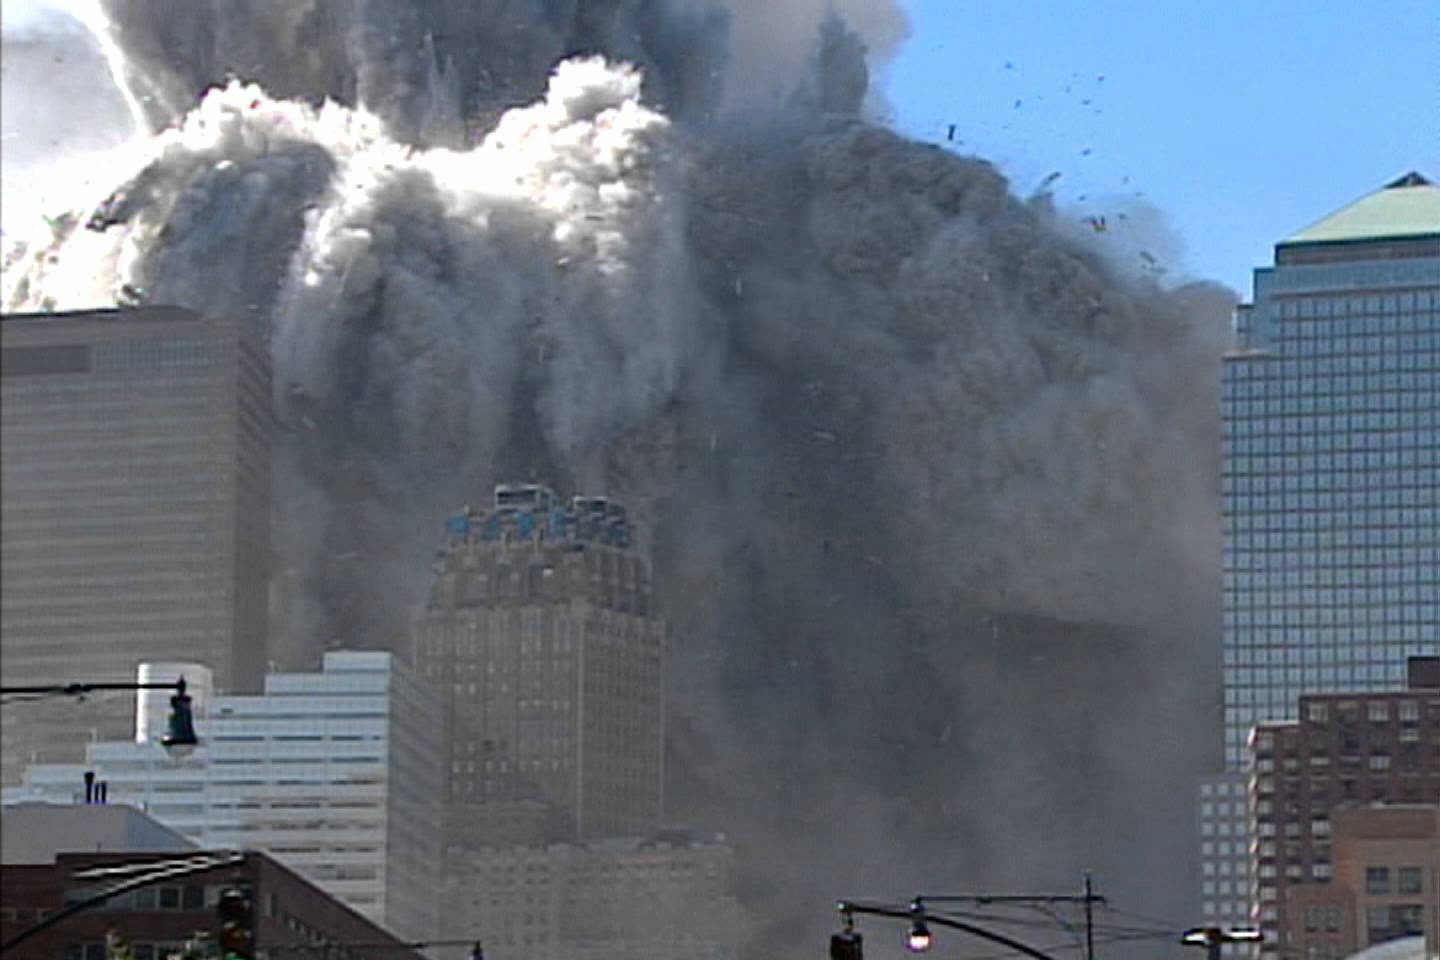 Pictures of the twin towers collapsing